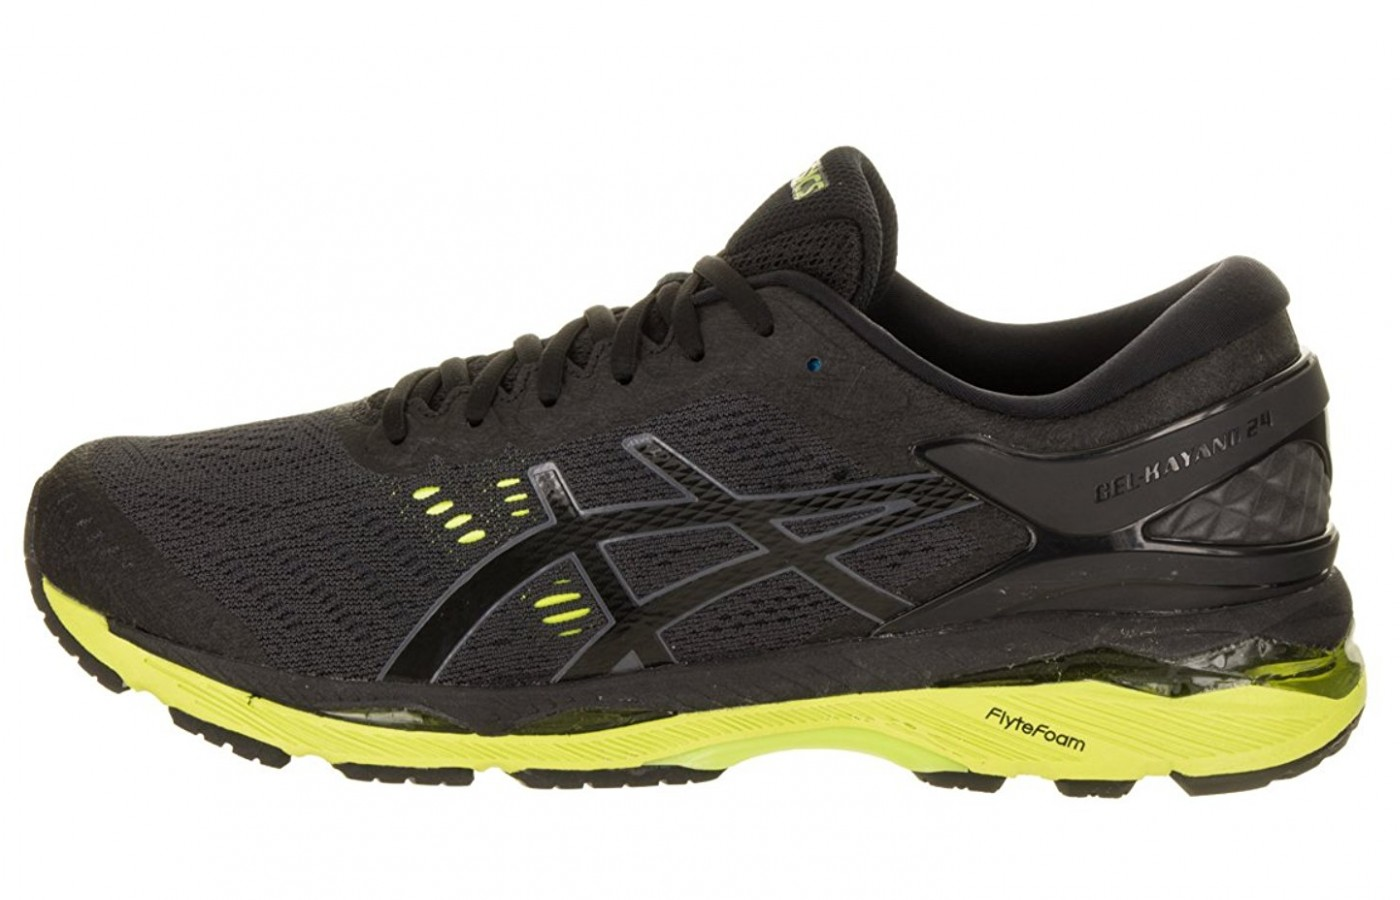 Asics Gel Kayano 24 Reviewed & Tested